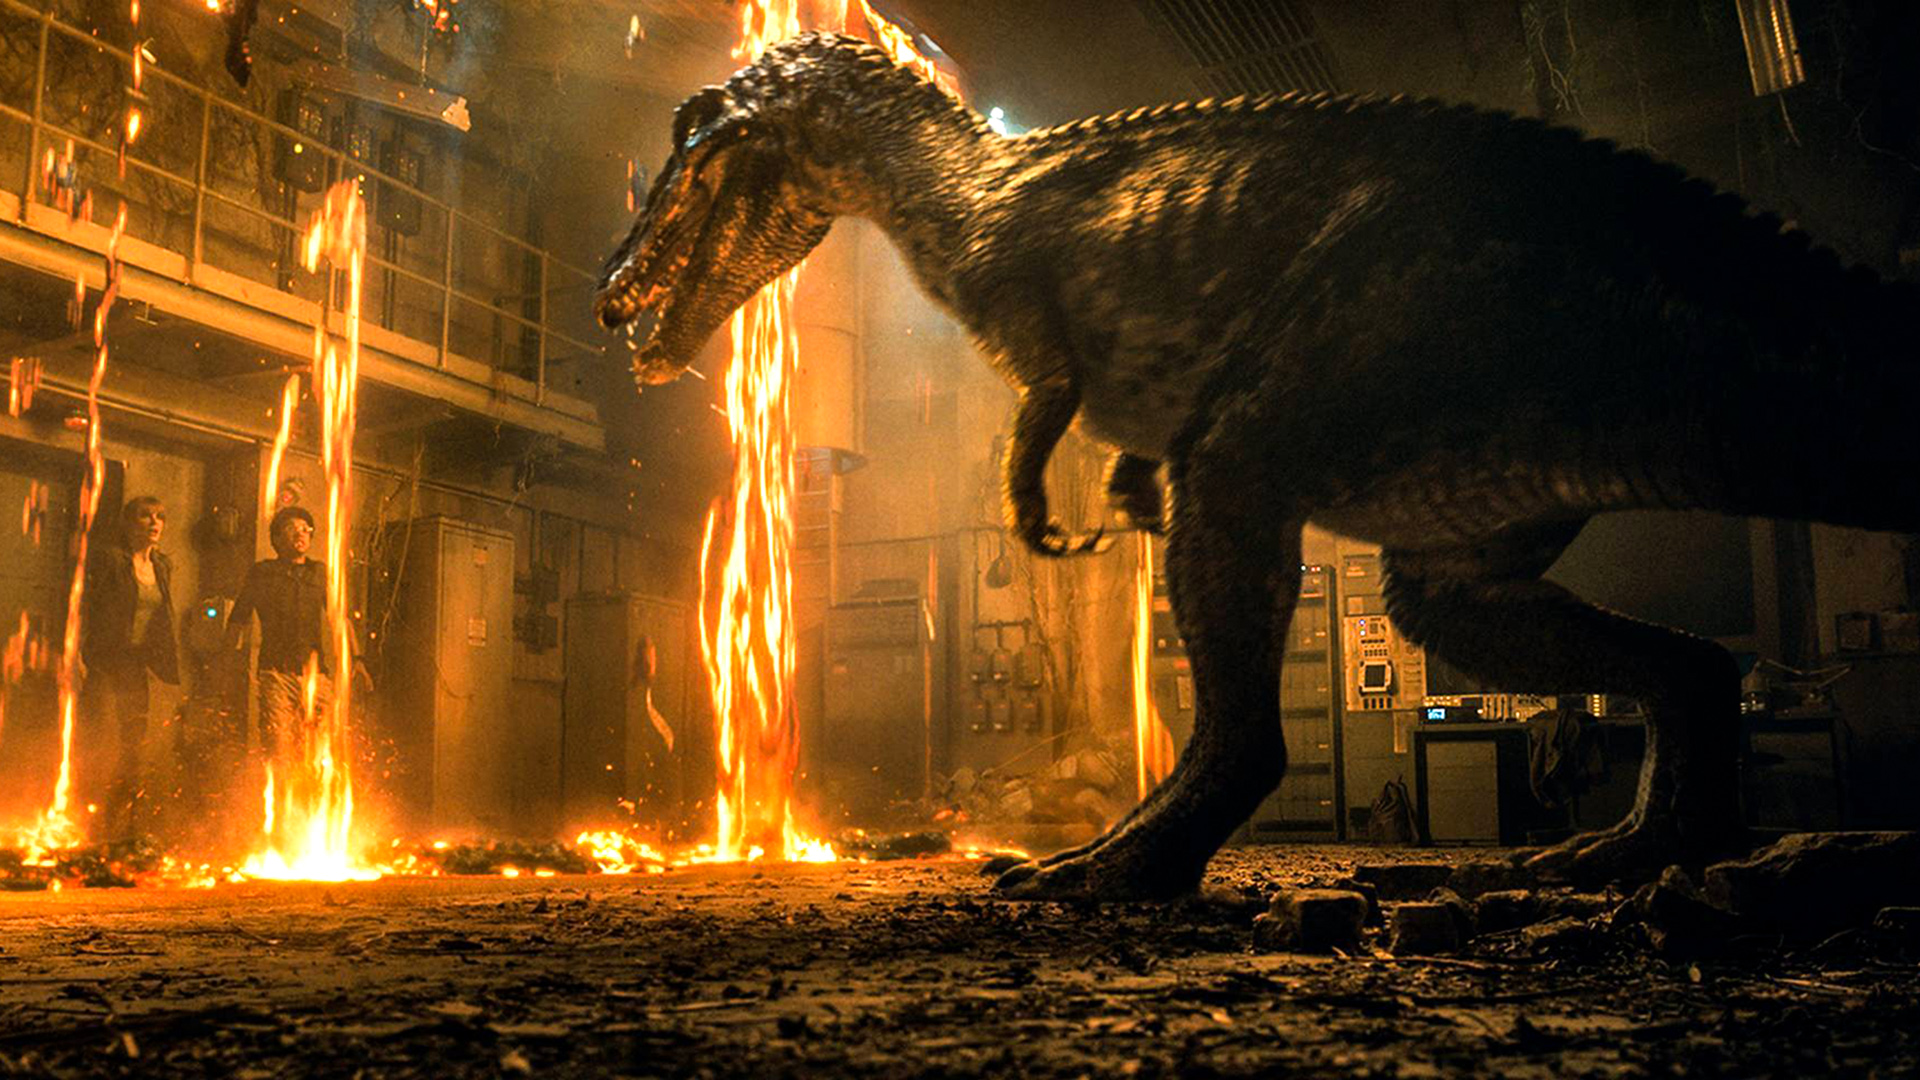 https://bloody-disgusting.com/wp-content/uploads/2018/06/fallen-kingdom-post-credits.png